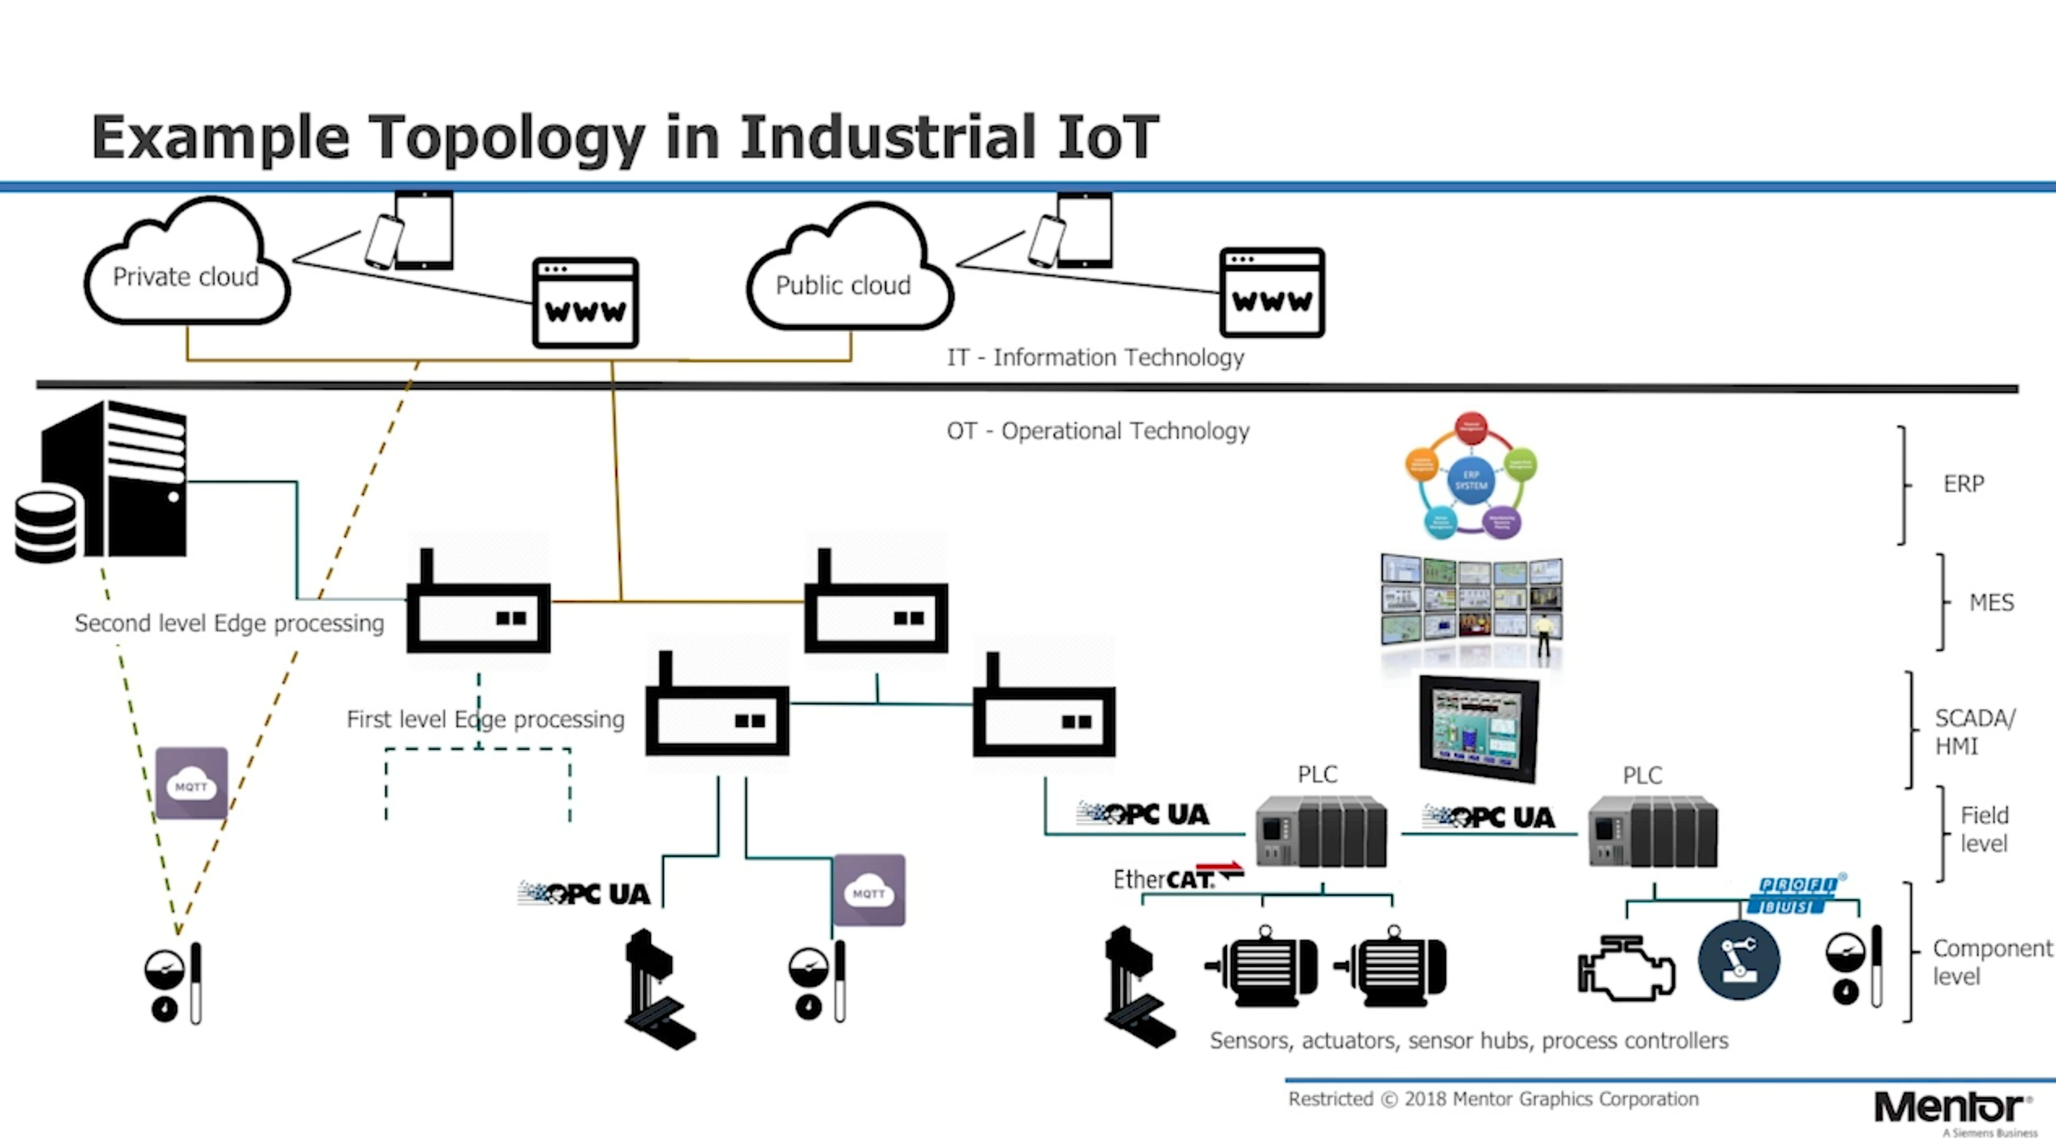 Enabling Embedded Devices for Industrial Internet of Things